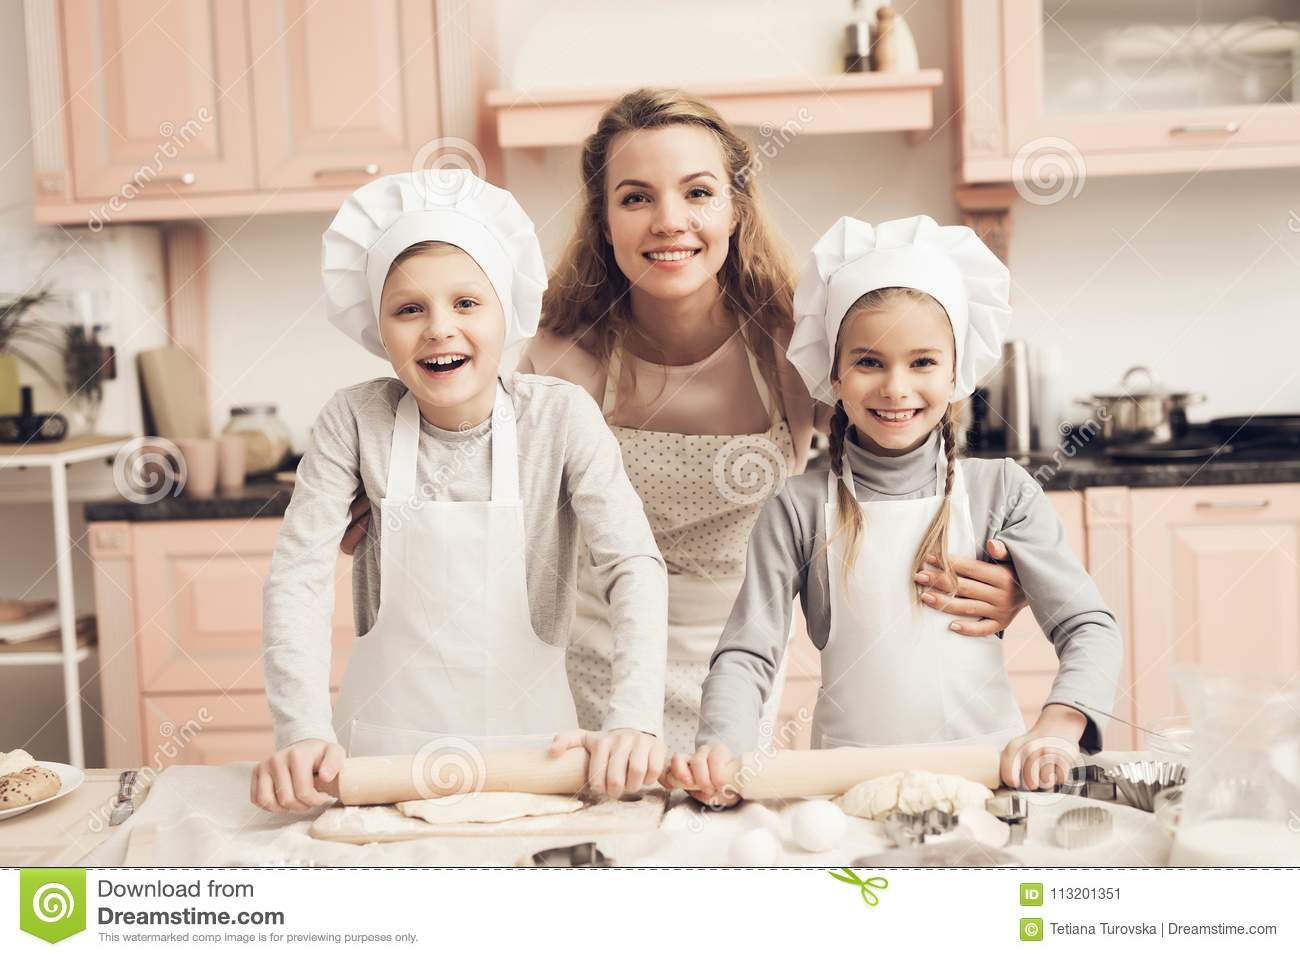 Children with mother in kitchen. Family is ready to roll out dough.